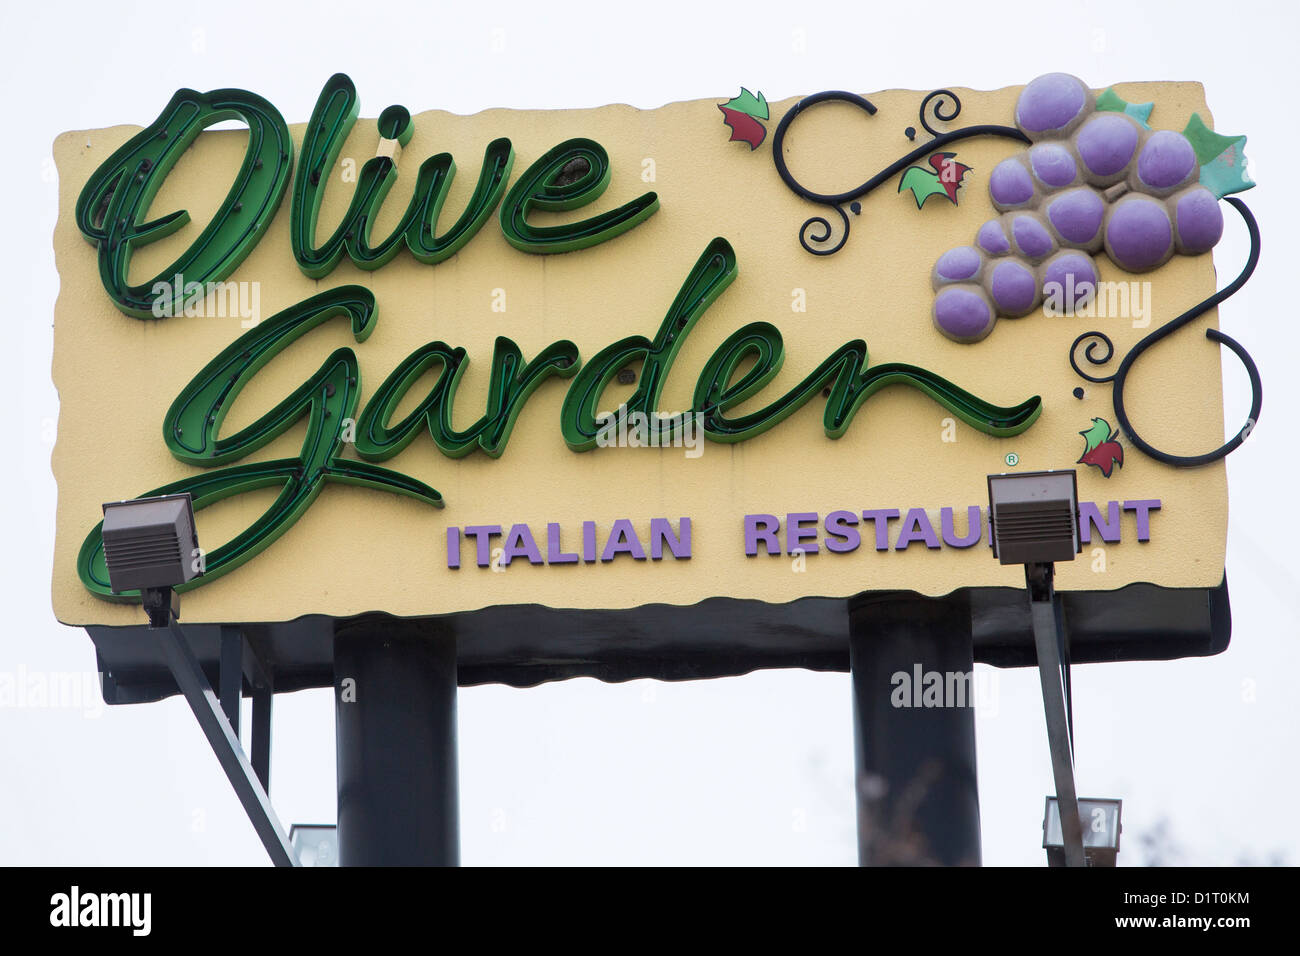 An Olive Garden Casual Dining Chain Restaurant.   Stock Image